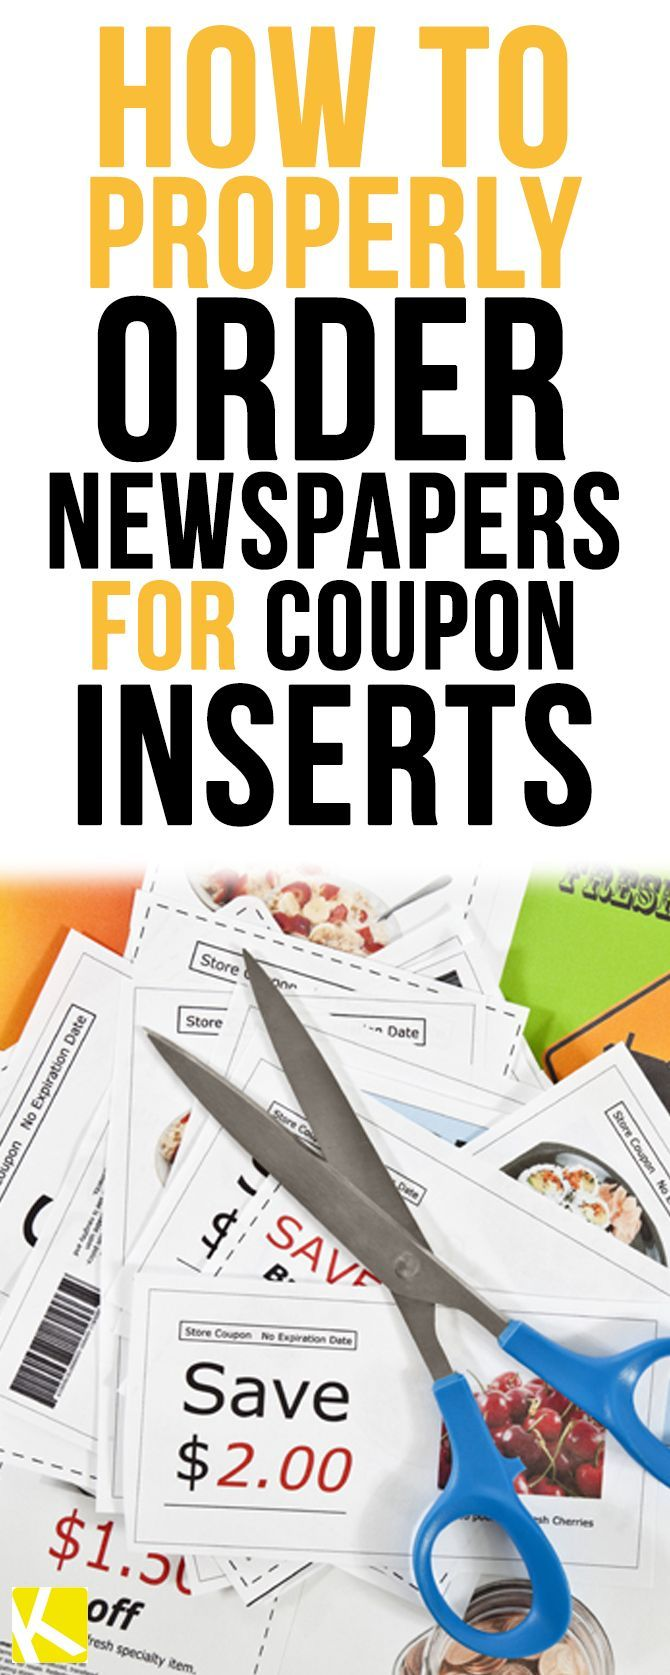 Brandsaver Coupons Your Local Paper P&GbrandSAVER® is a booklet that offers great savings on P&G products each month, and can be found in most home-delivered Sunday newspapers.